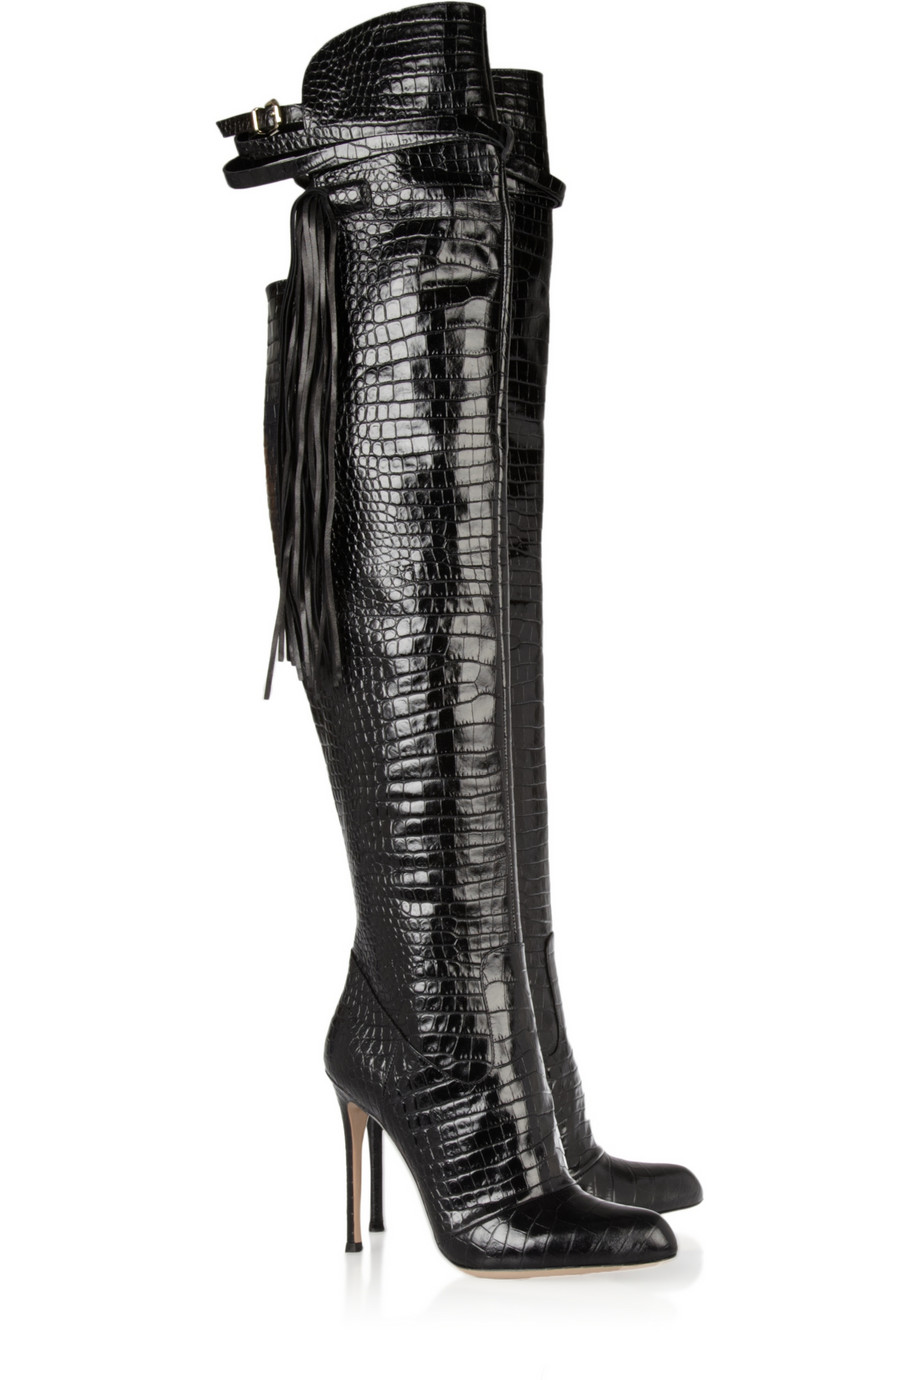 Altuzarra Leather Fringe Over The Knee Boots in Black | Lyst